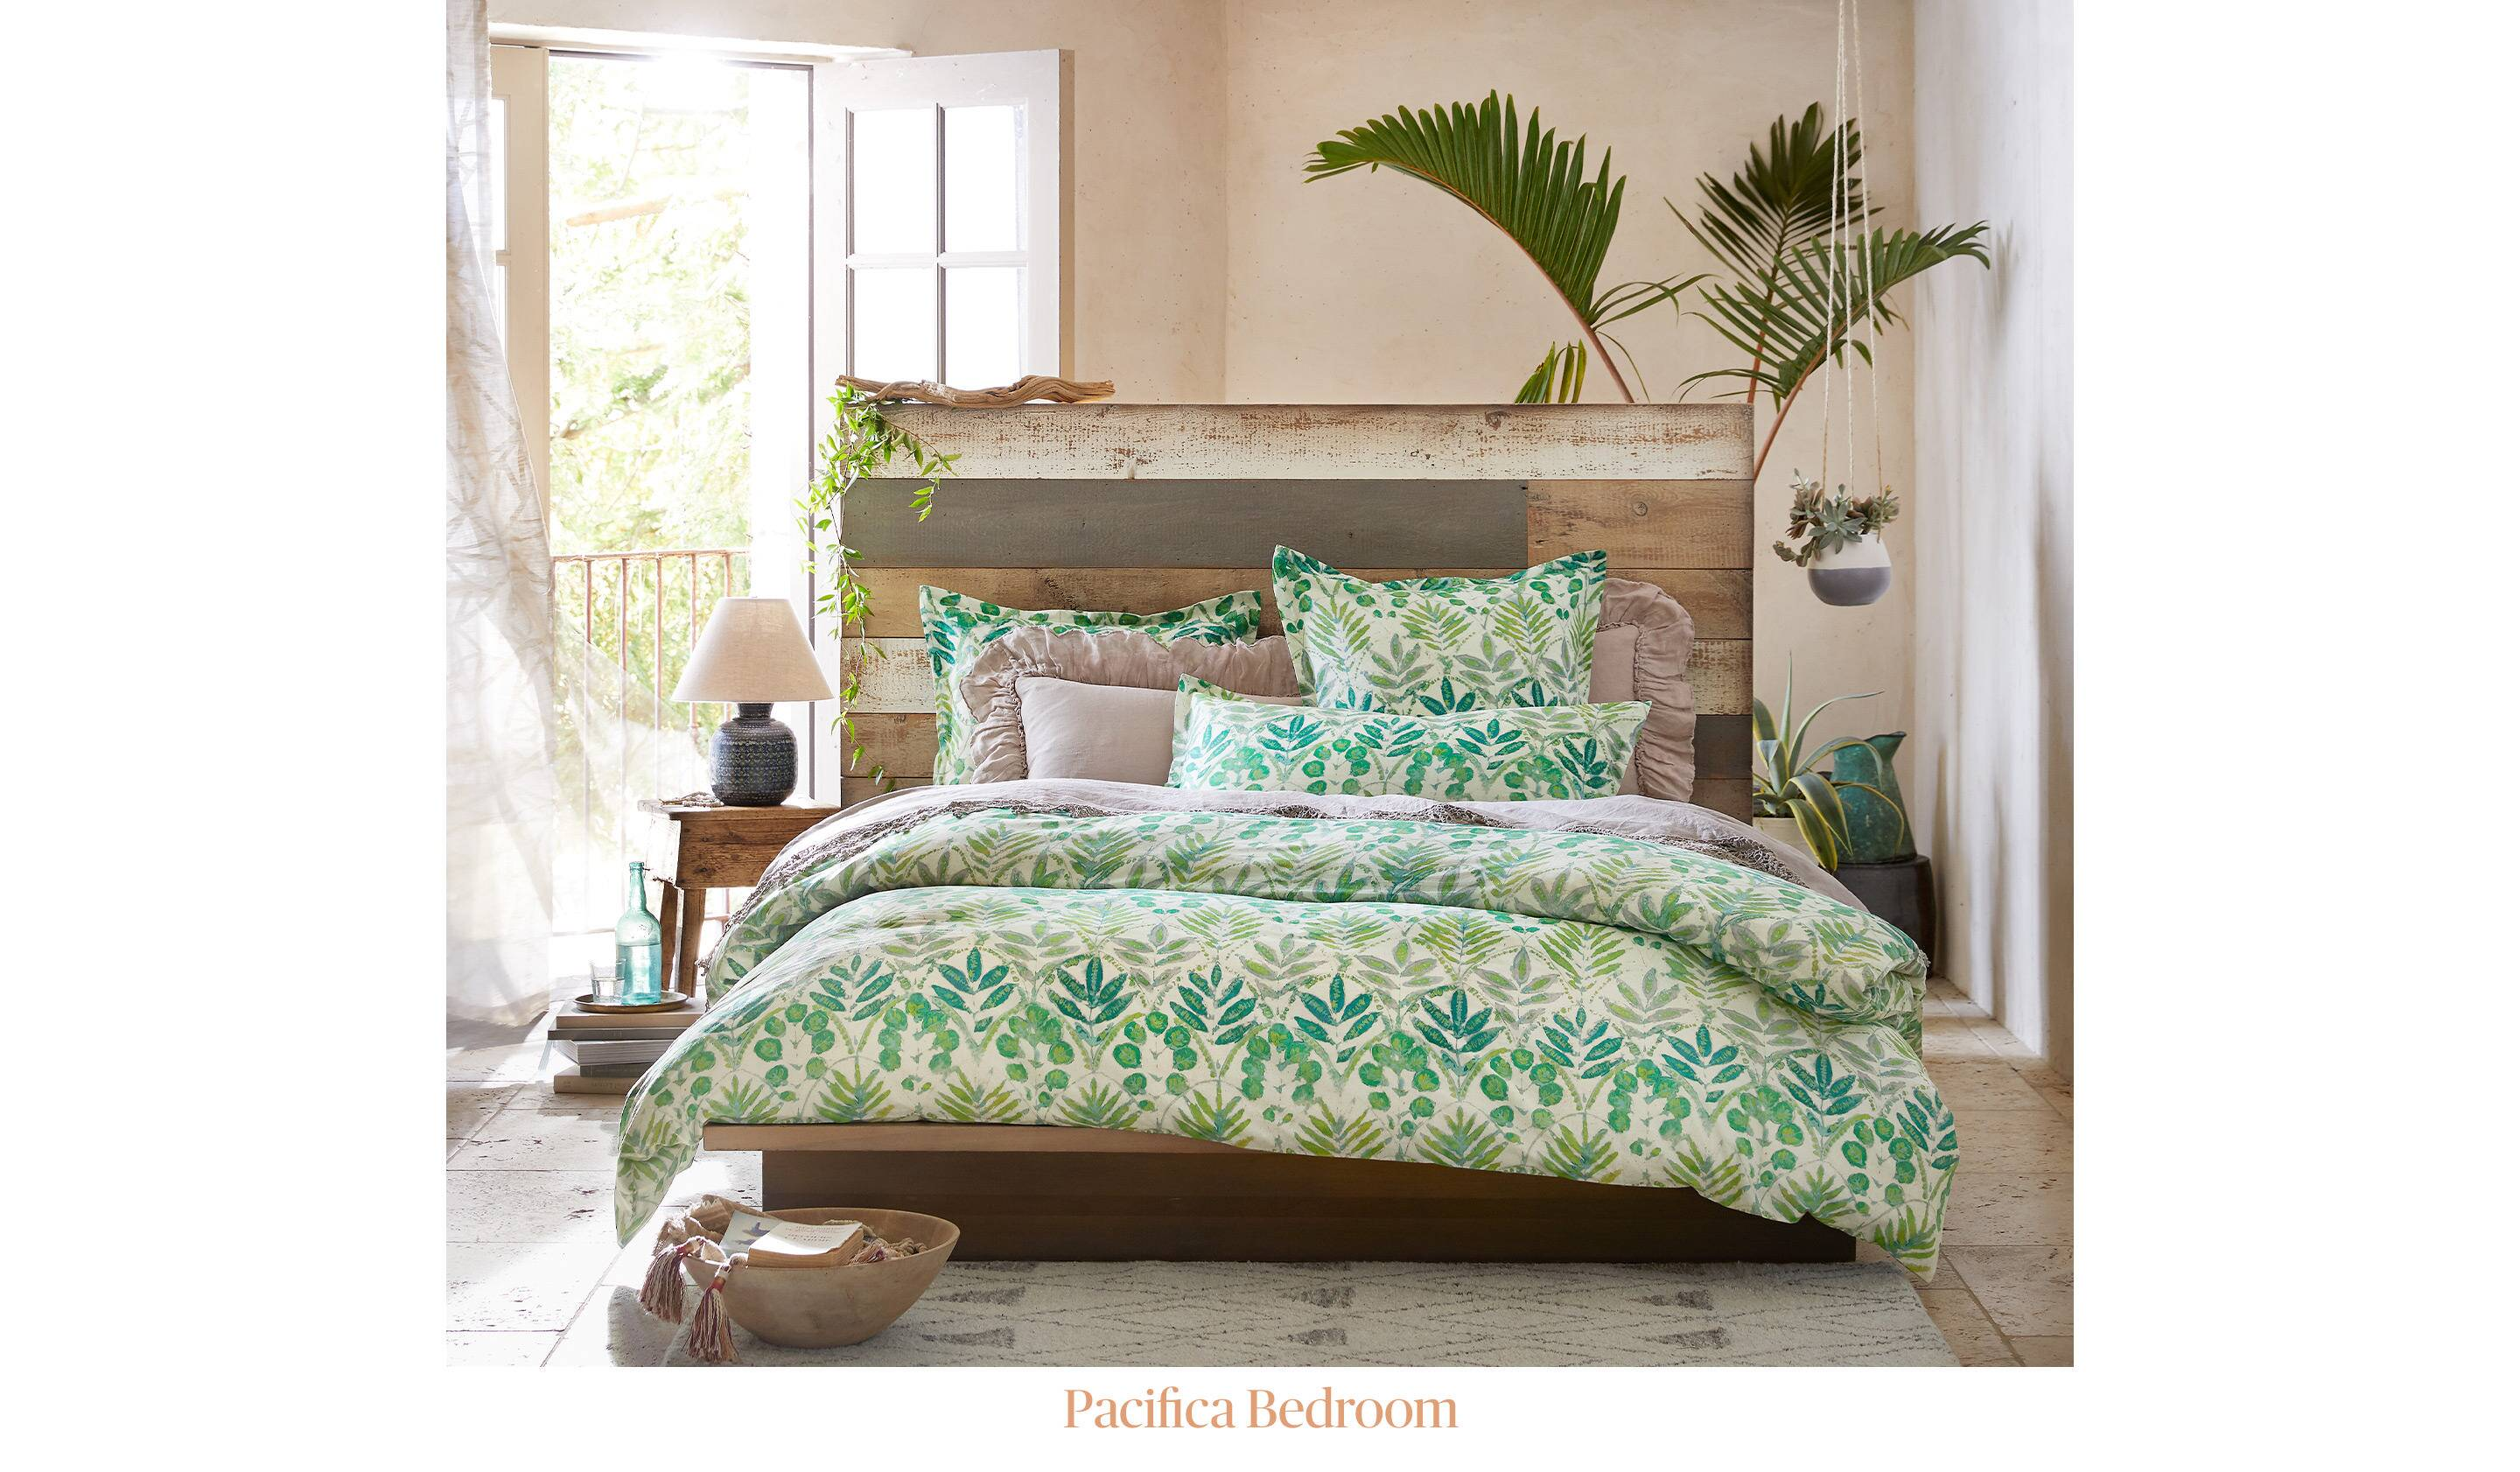 Pacifica Bedroom